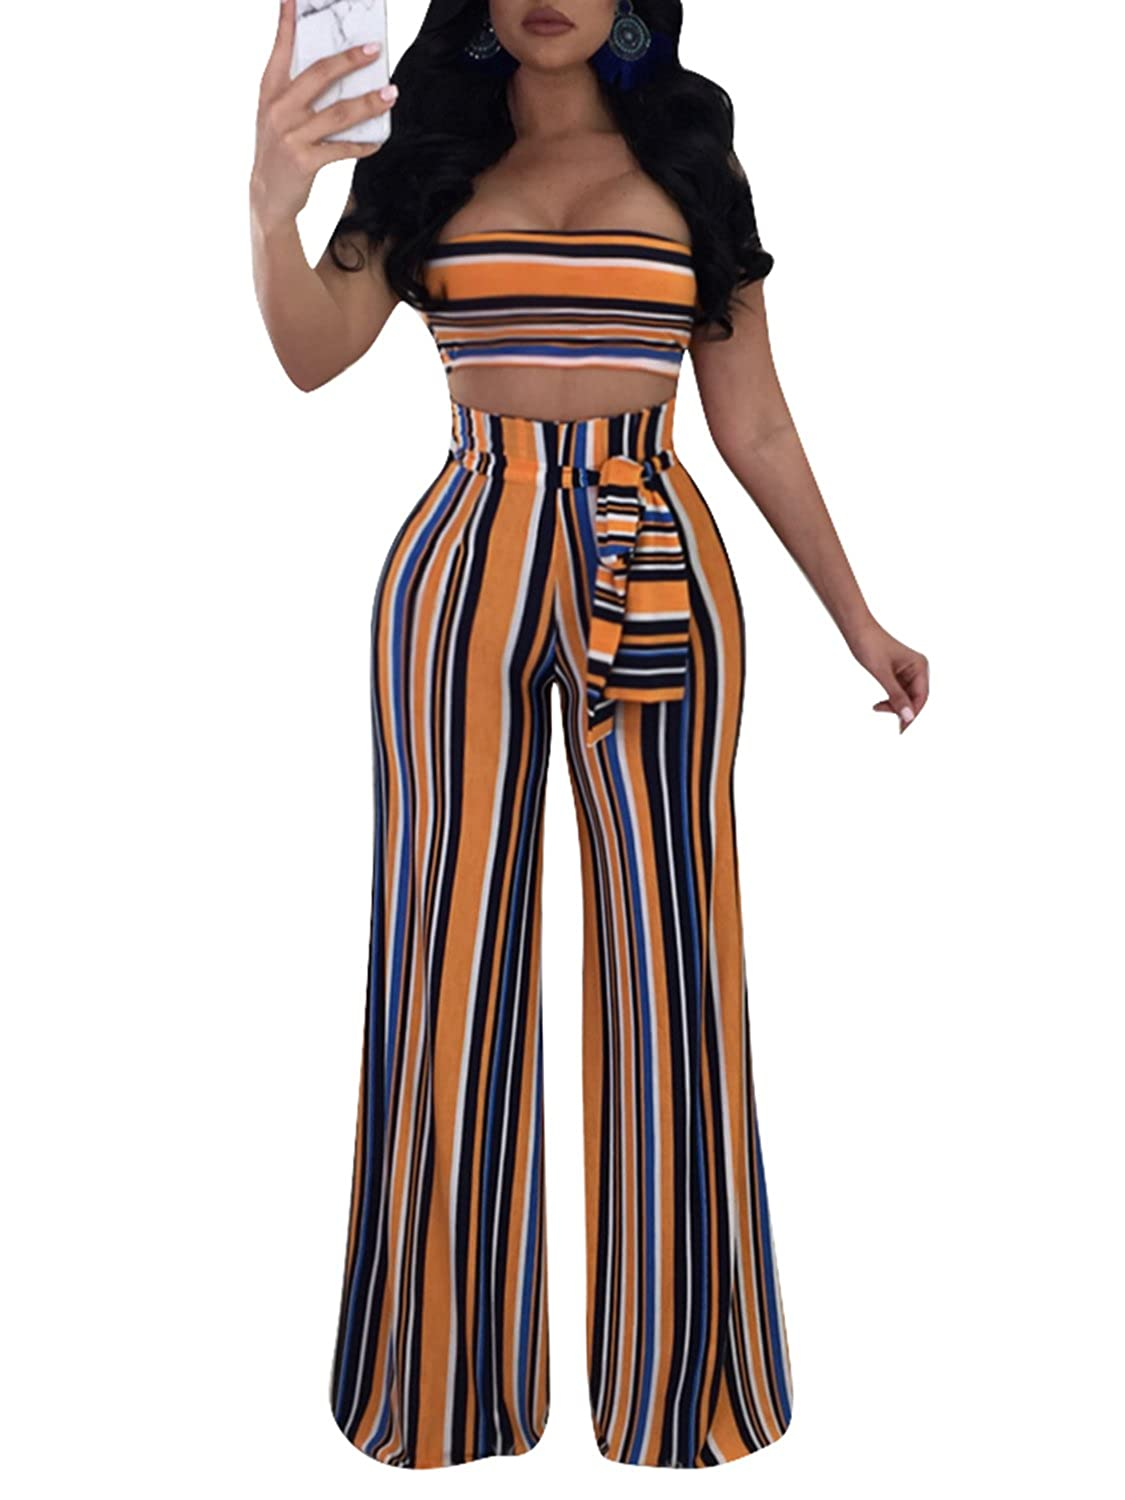 12bf7c1f34f7 Two pieces backless sleeveless boho style jumpsuit outfit strapless crop top  and high waist wide leg long pants set with self tie sash. Horizontal stripe  ...